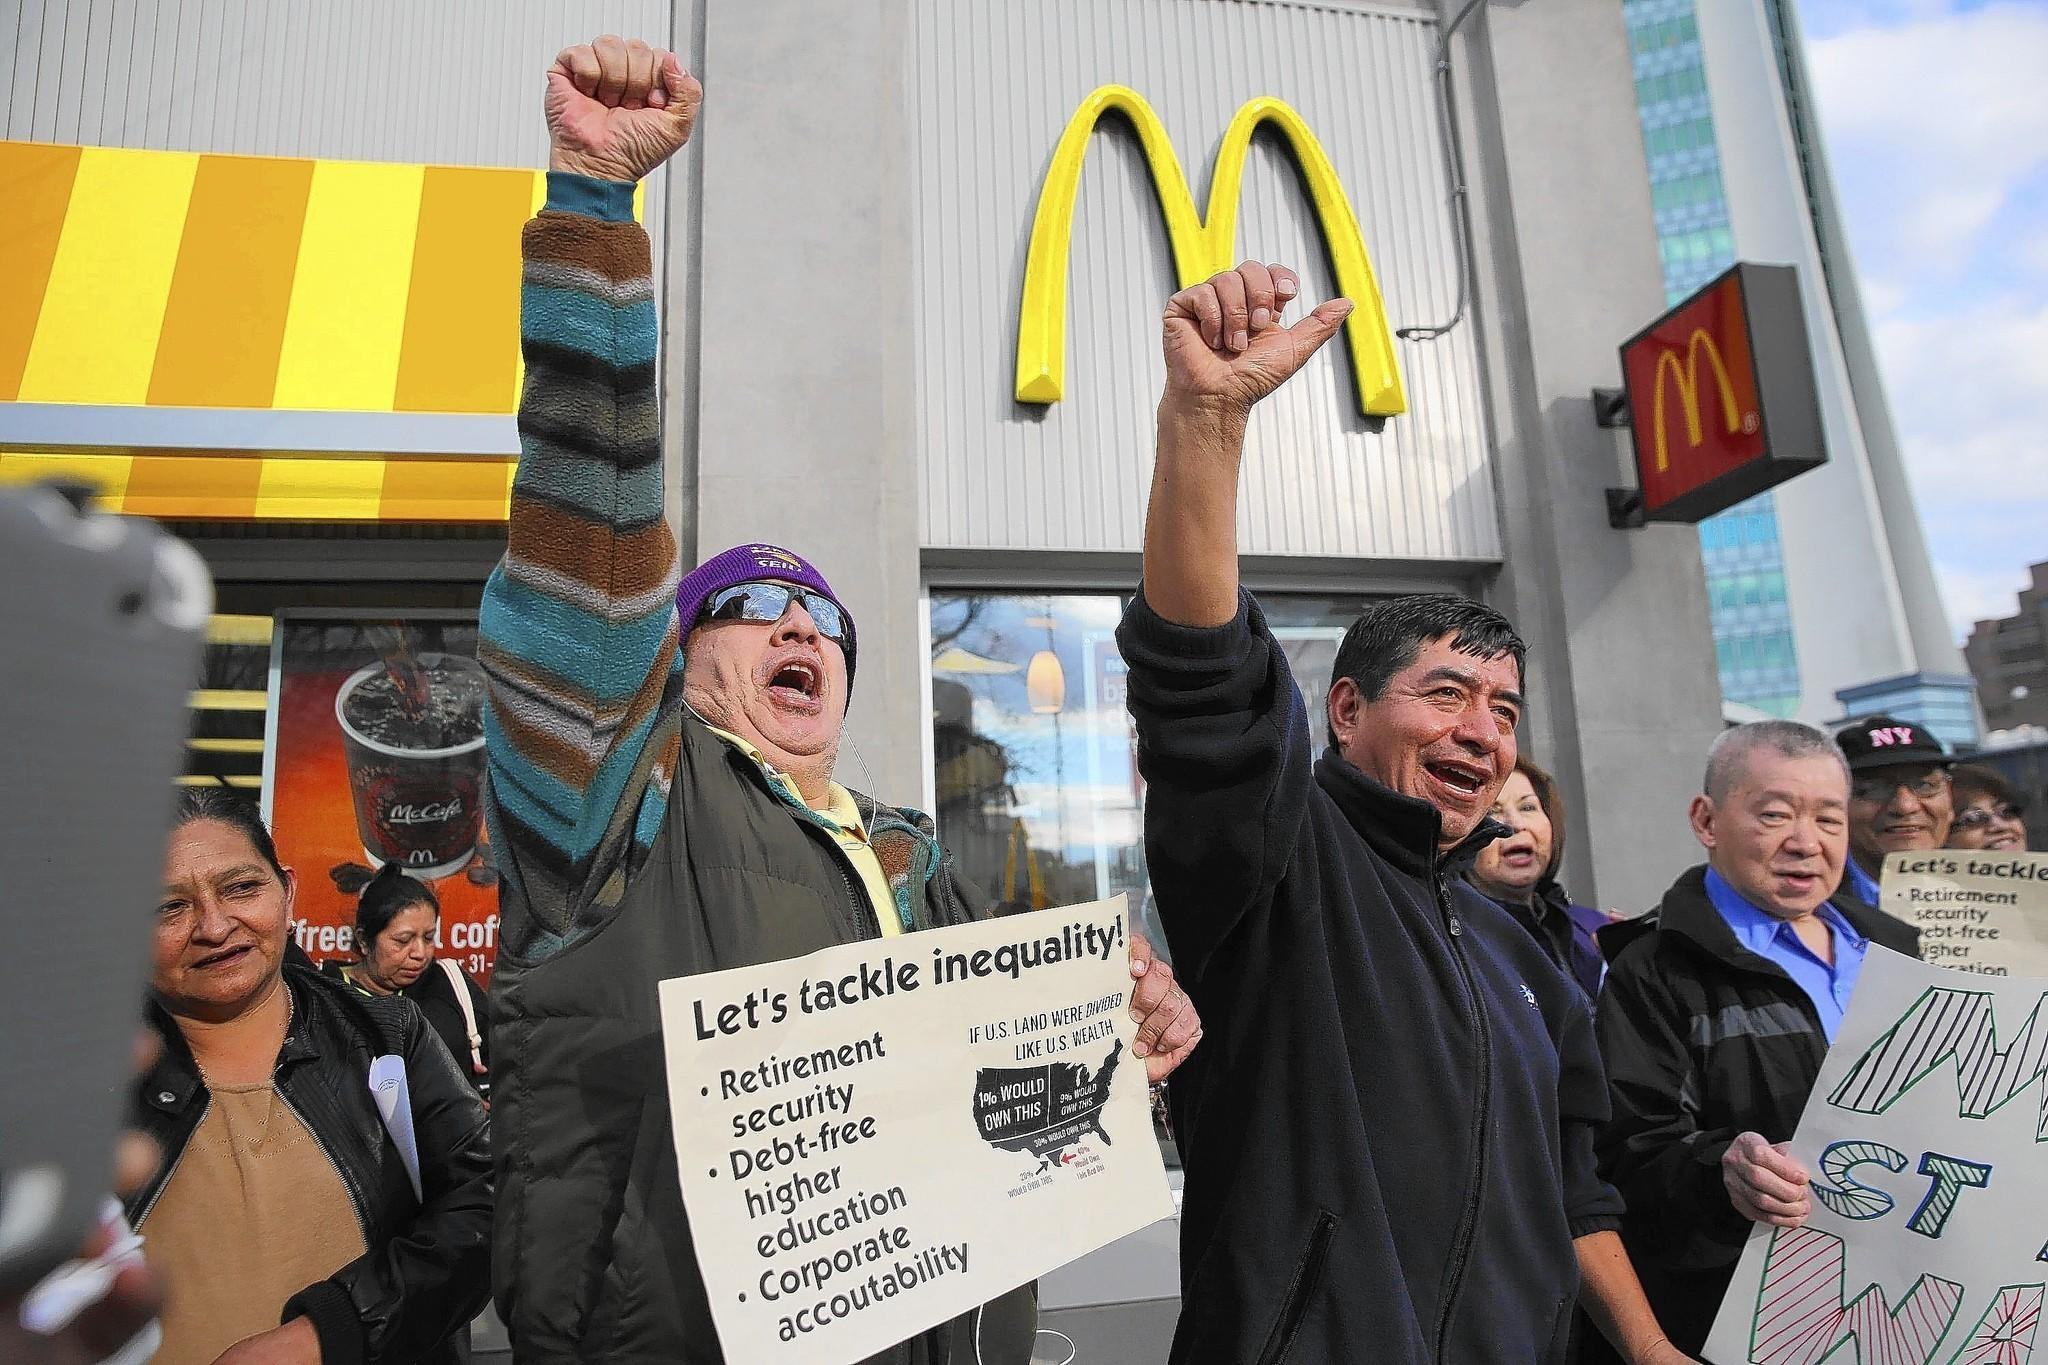 low wage workers pay the price of nickel and diming by employers wage theft trouble spots are agriculture retail fast food hotel housekeeping janitorial